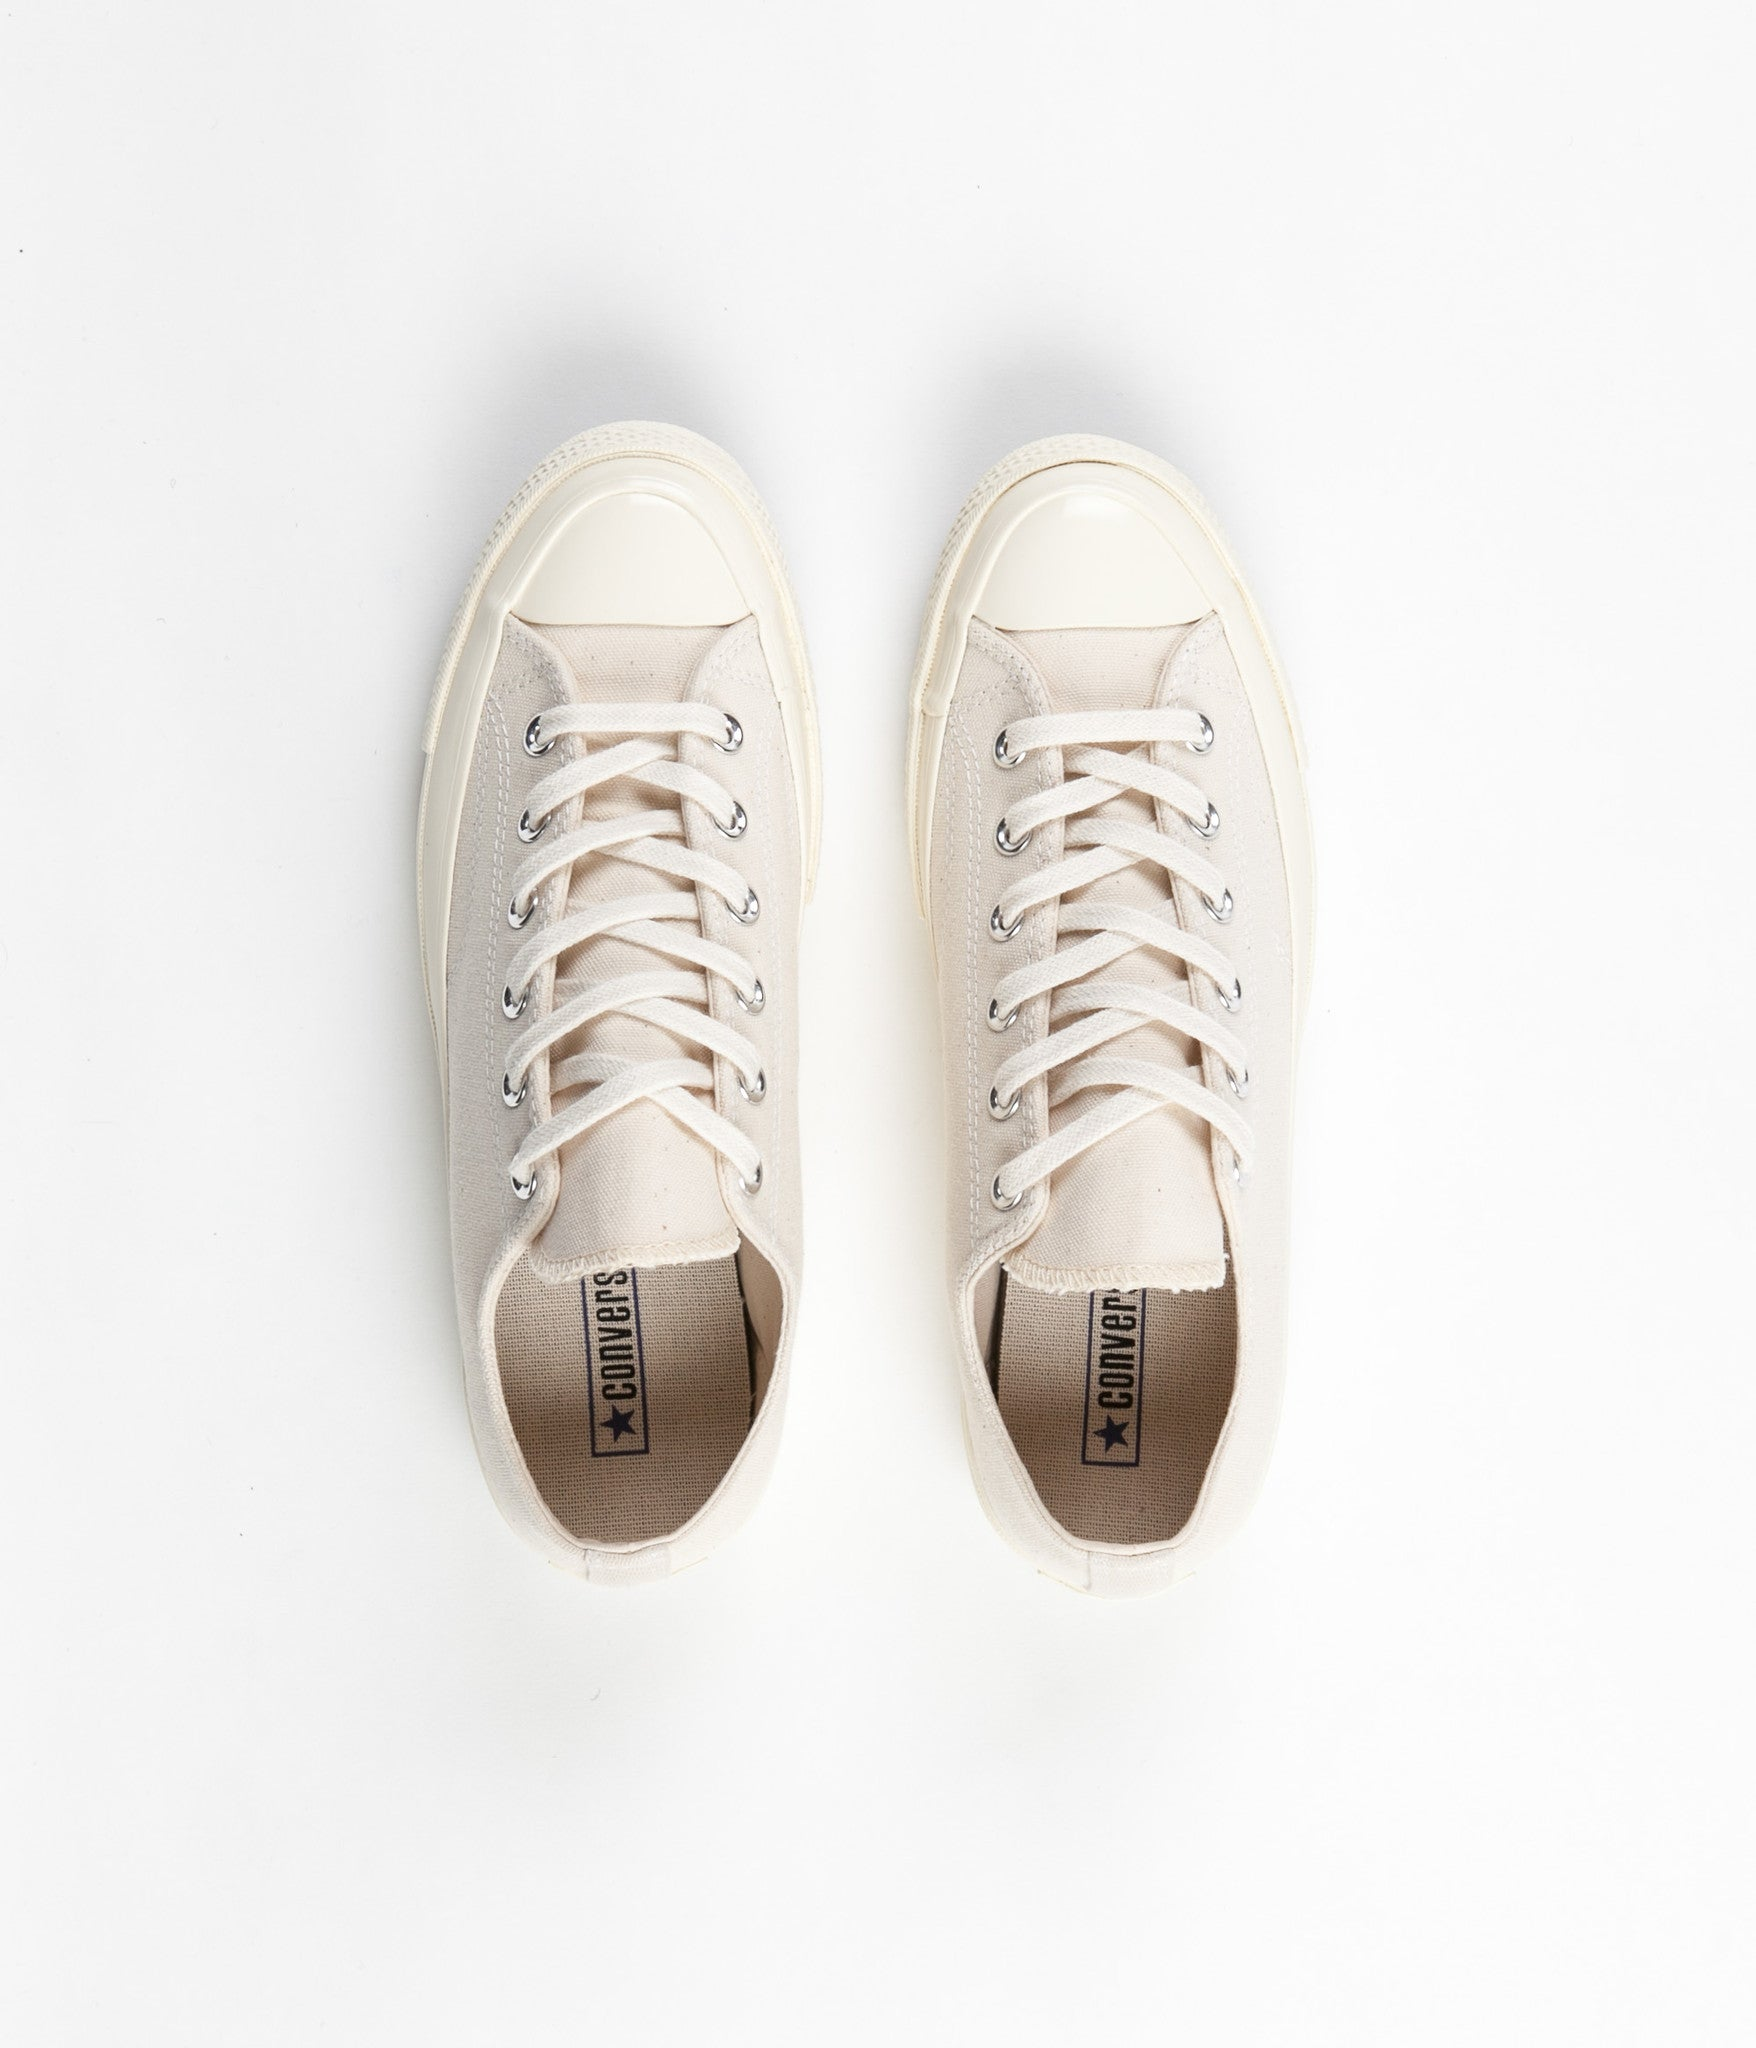 Converse CTAS 70's OX Shoes - Natural / Natural / Egret